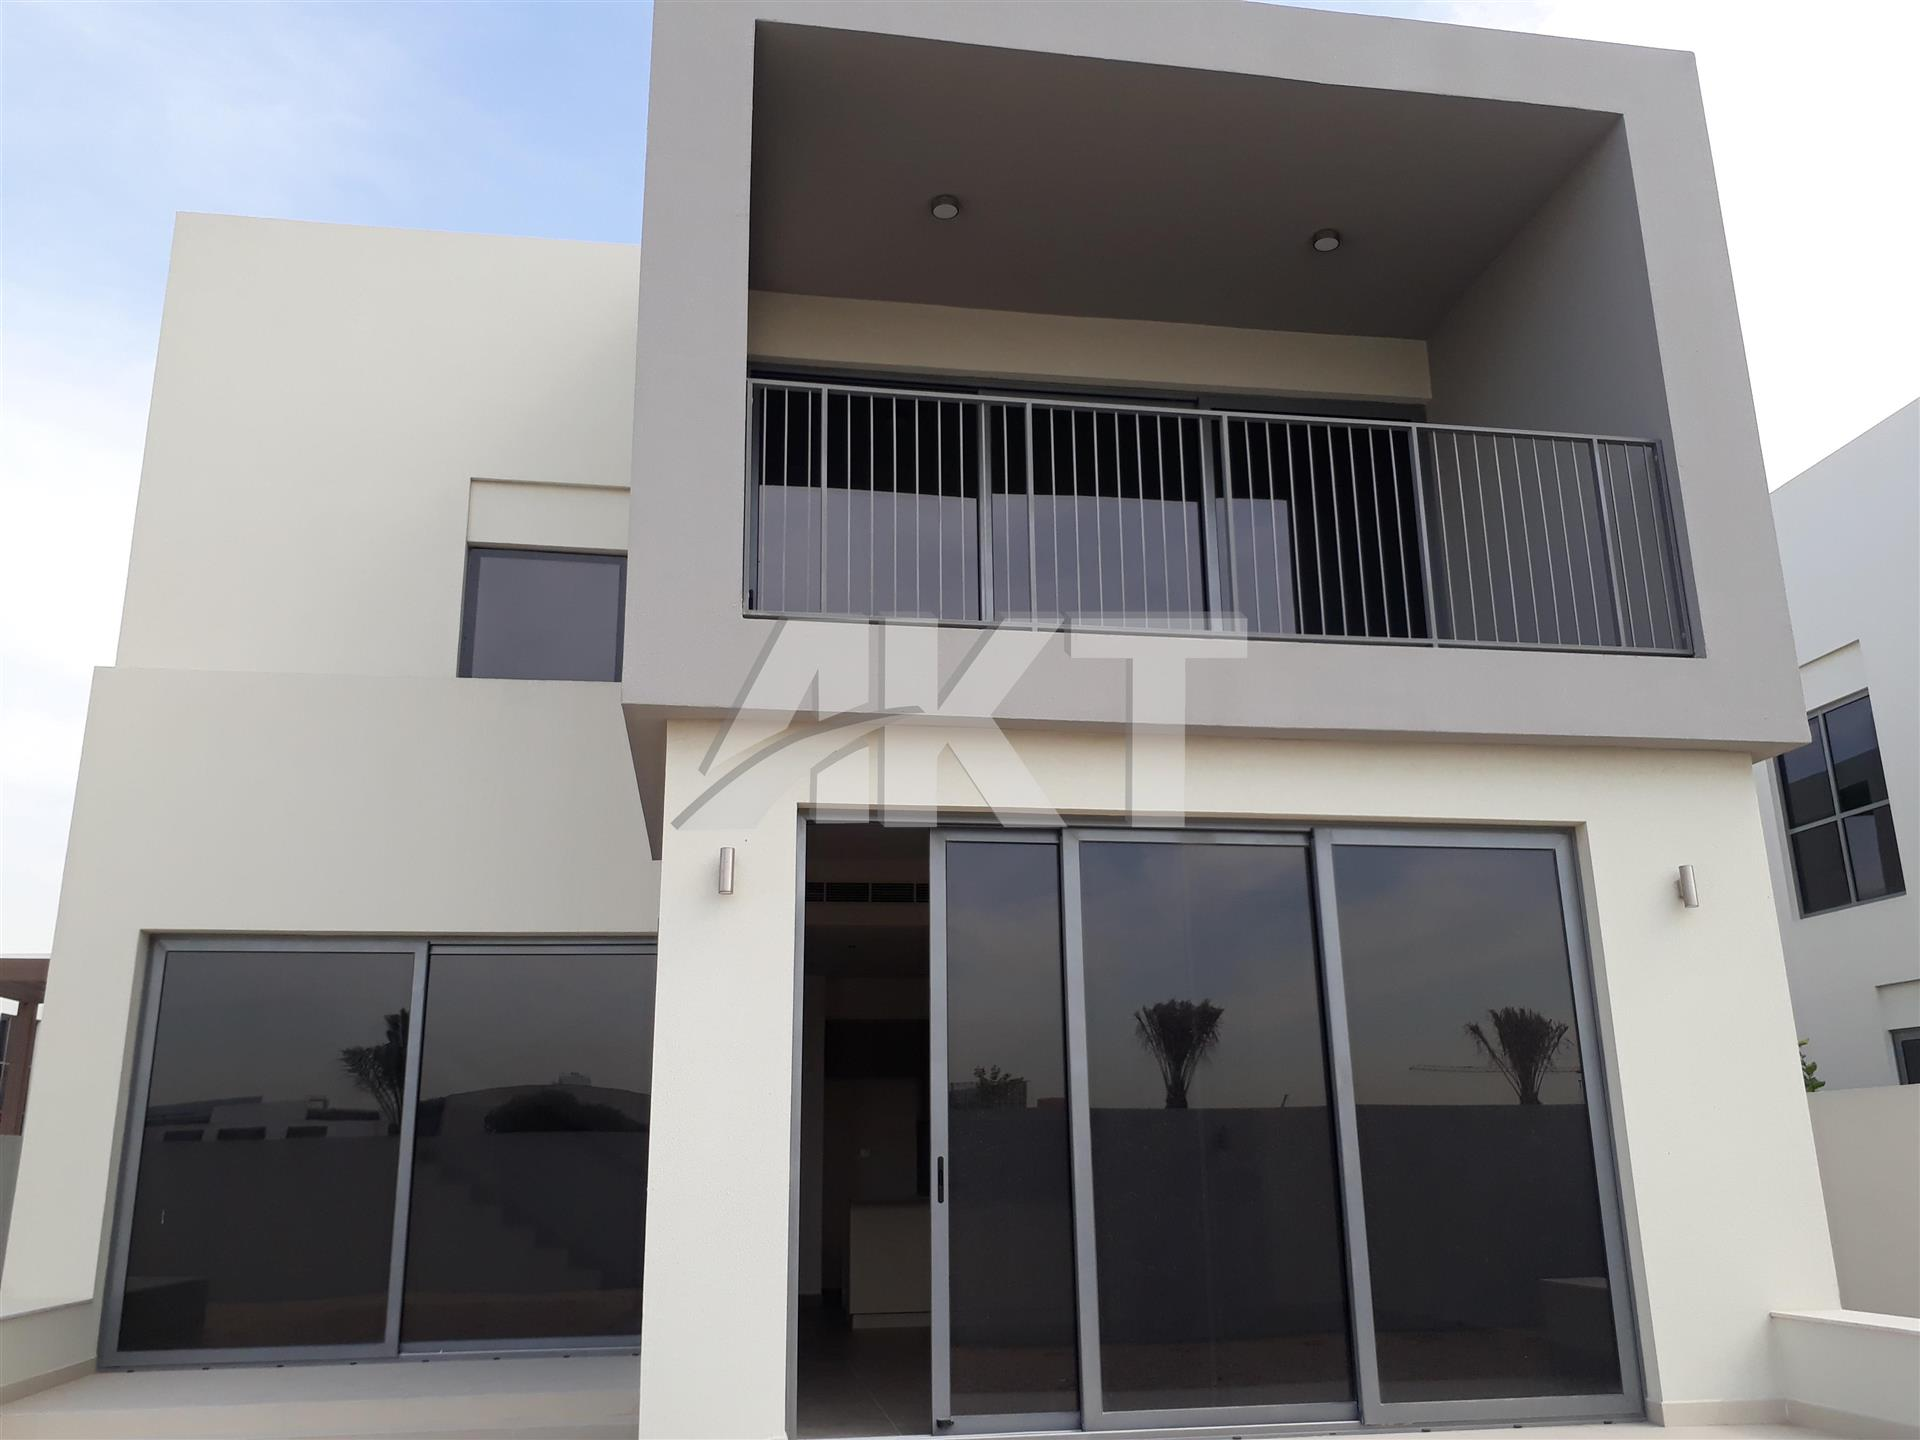 159 K / Big Size / 4 Beds / Low Price / Type 2E Villa